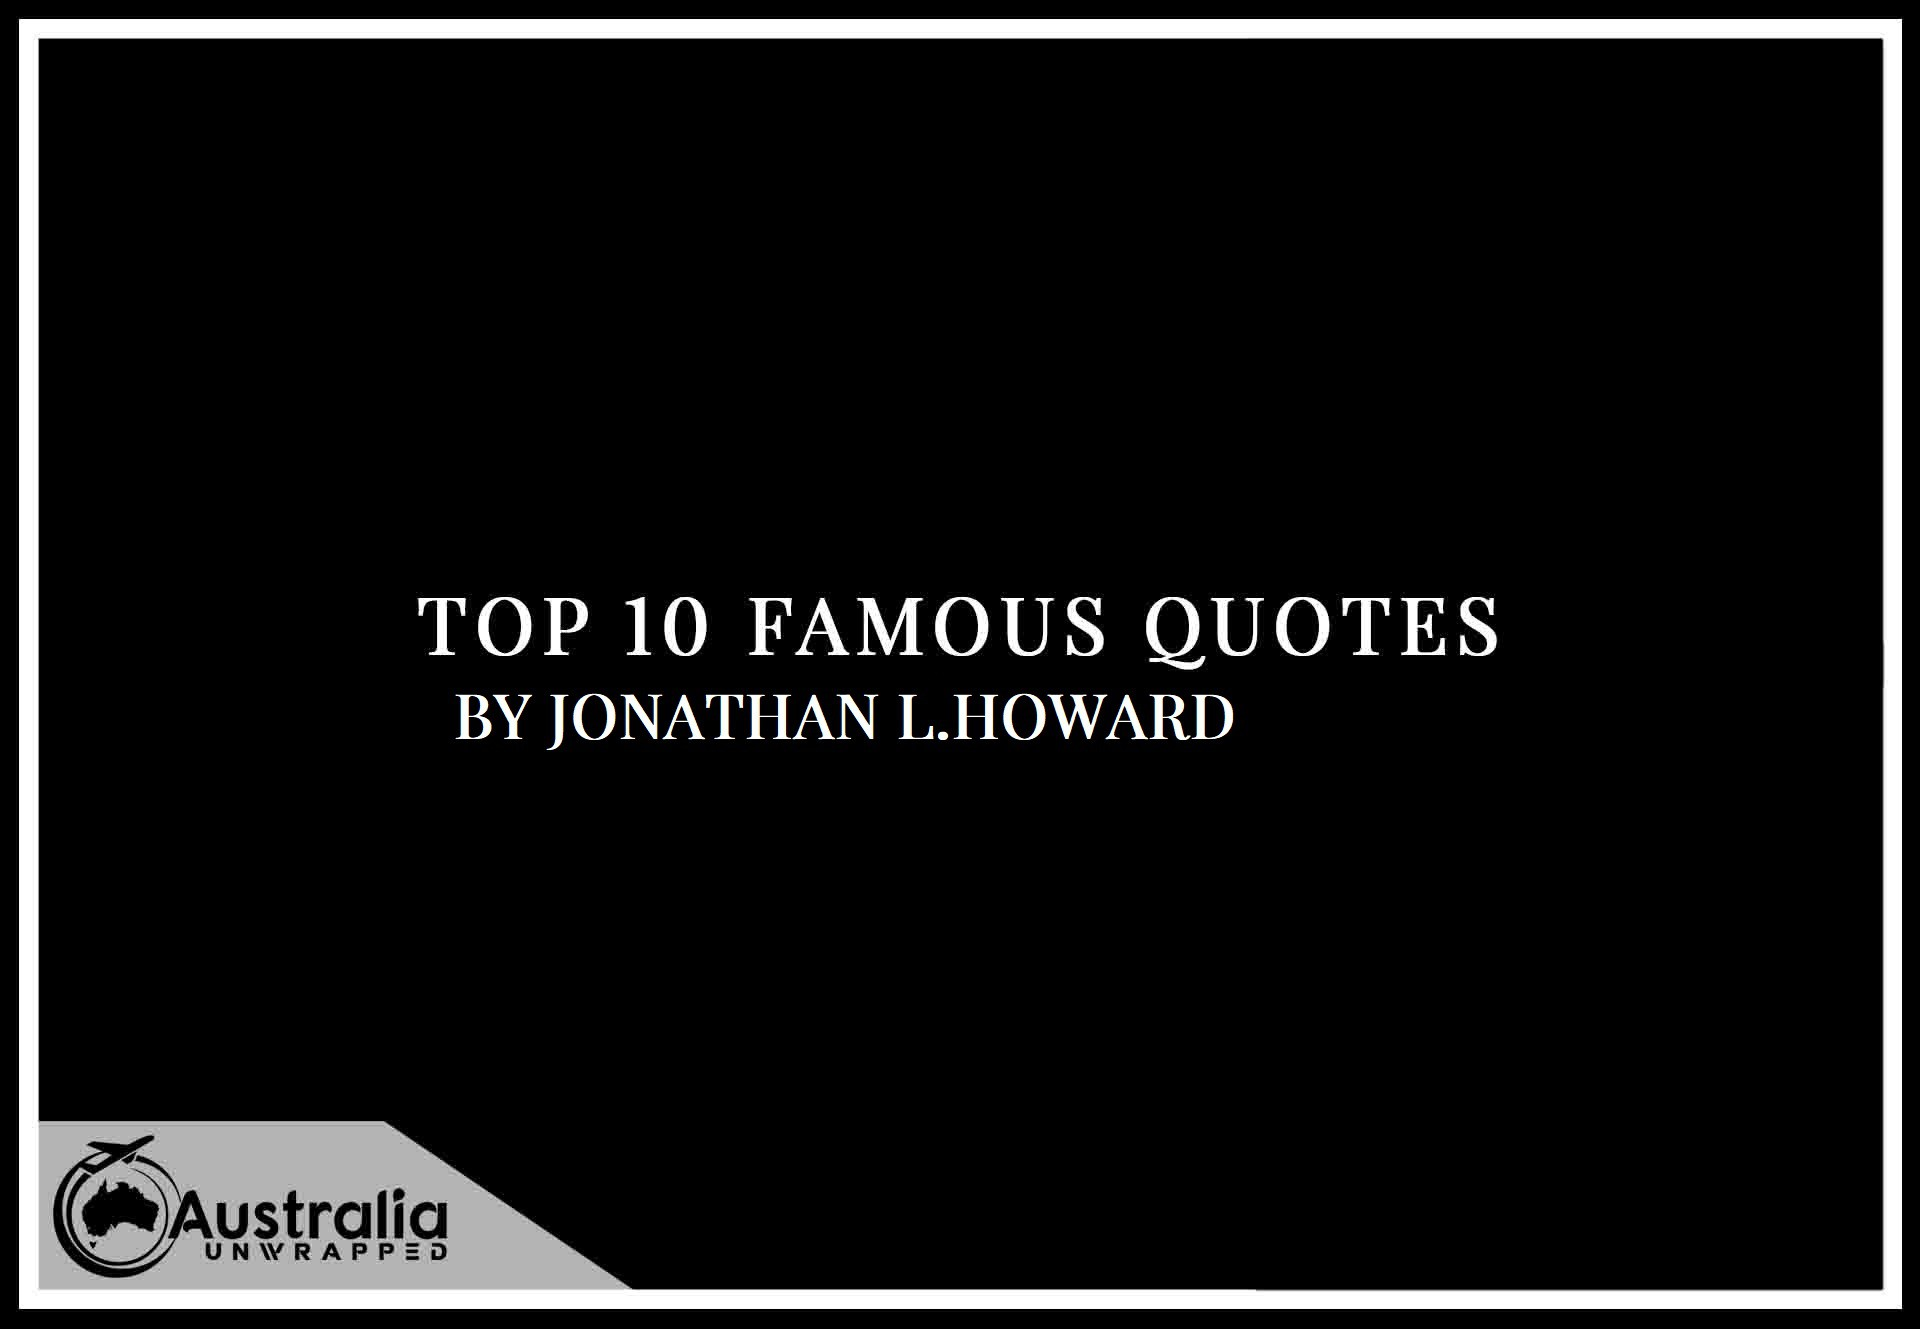 Top 10 Famous Quotes by Author Jonathan L. Howard